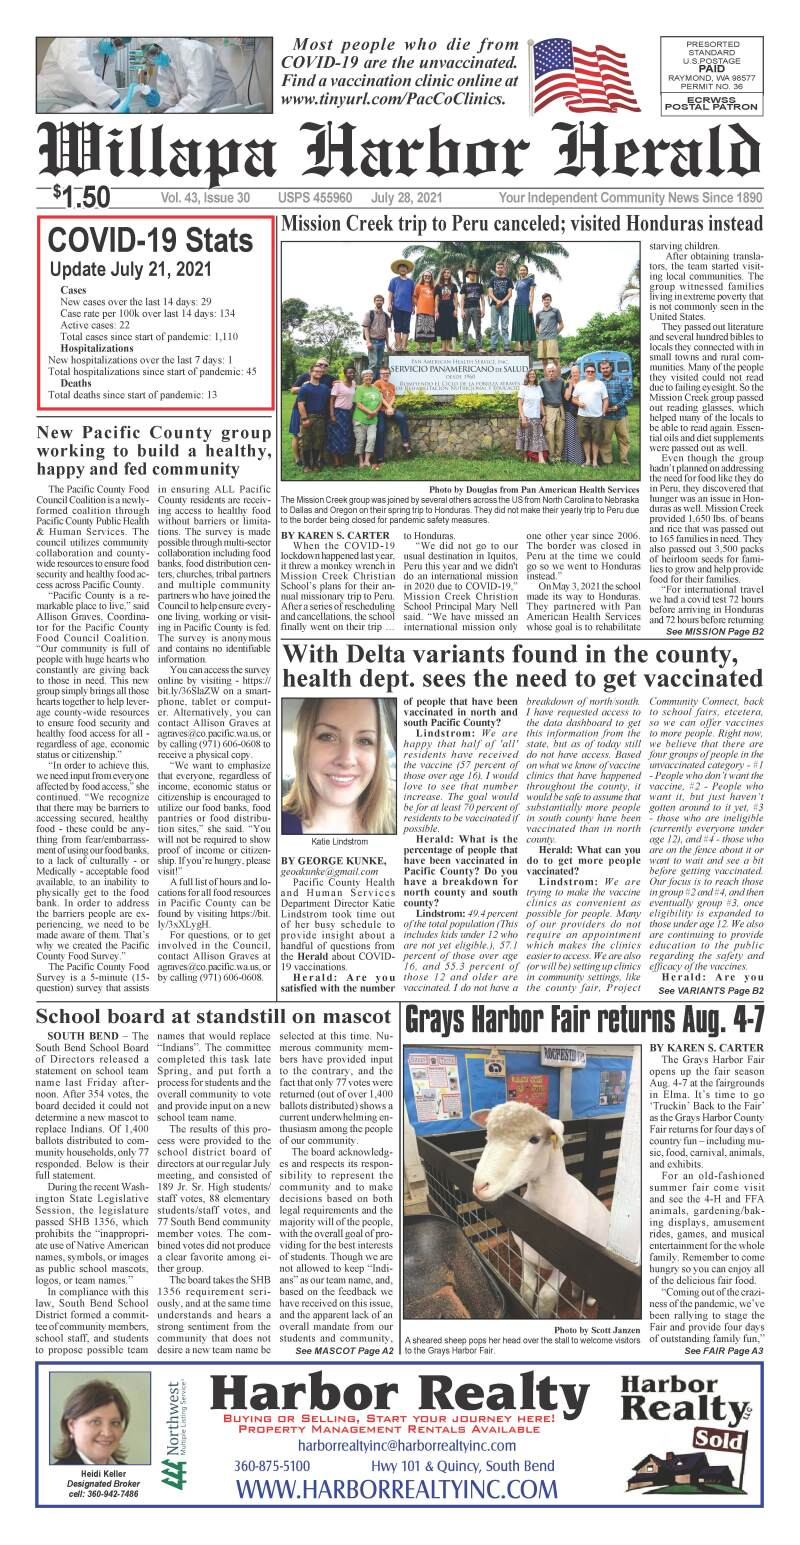 July 28, 2021 Willapa Harbor Herald and Pacific County Press